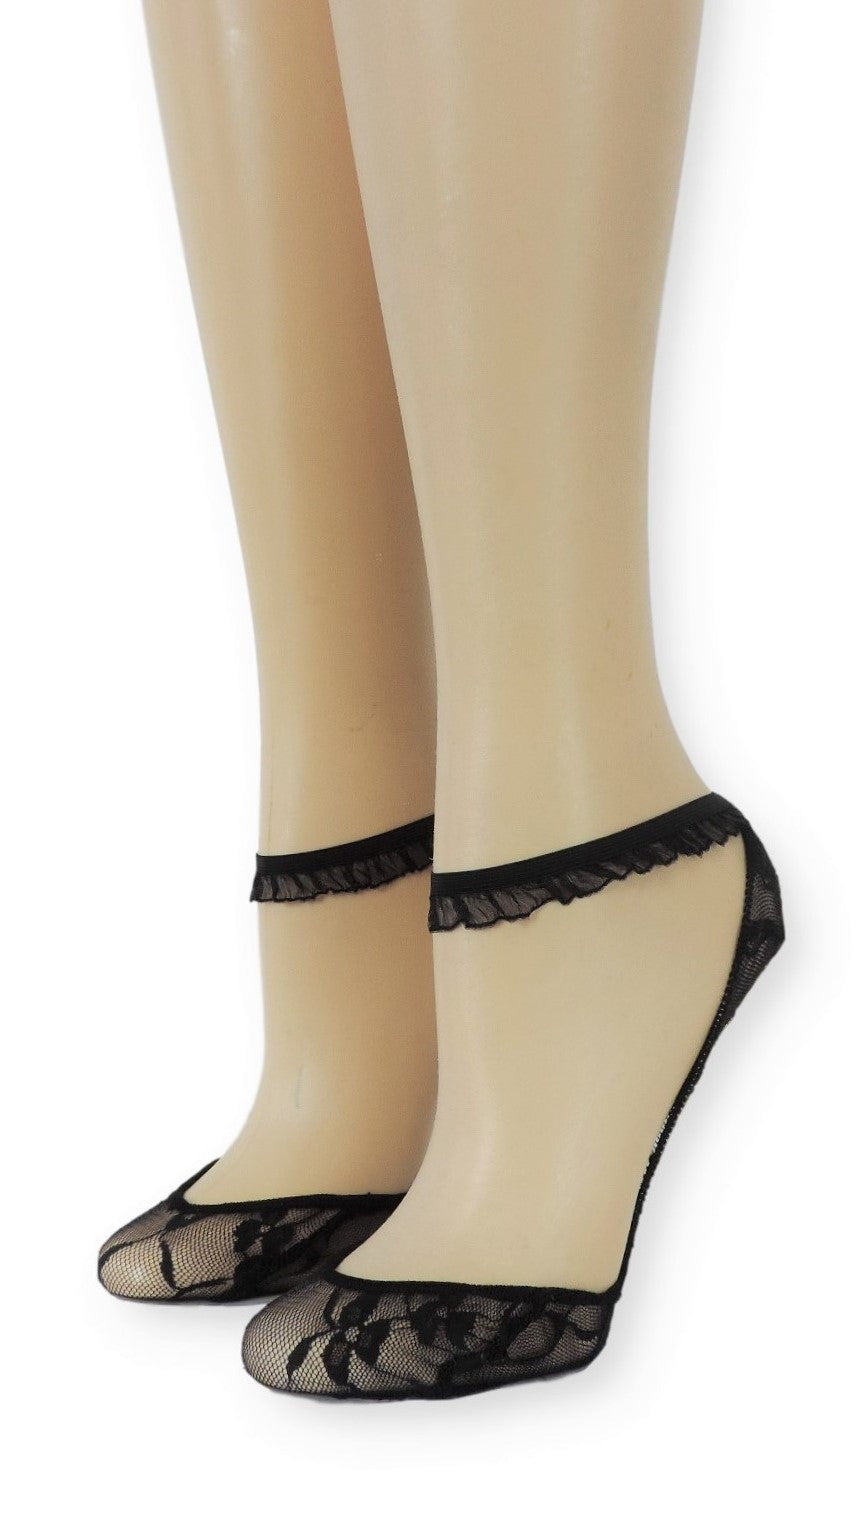 Ankle Mesh Socks with Frill strap - Global Trendz Fashion®